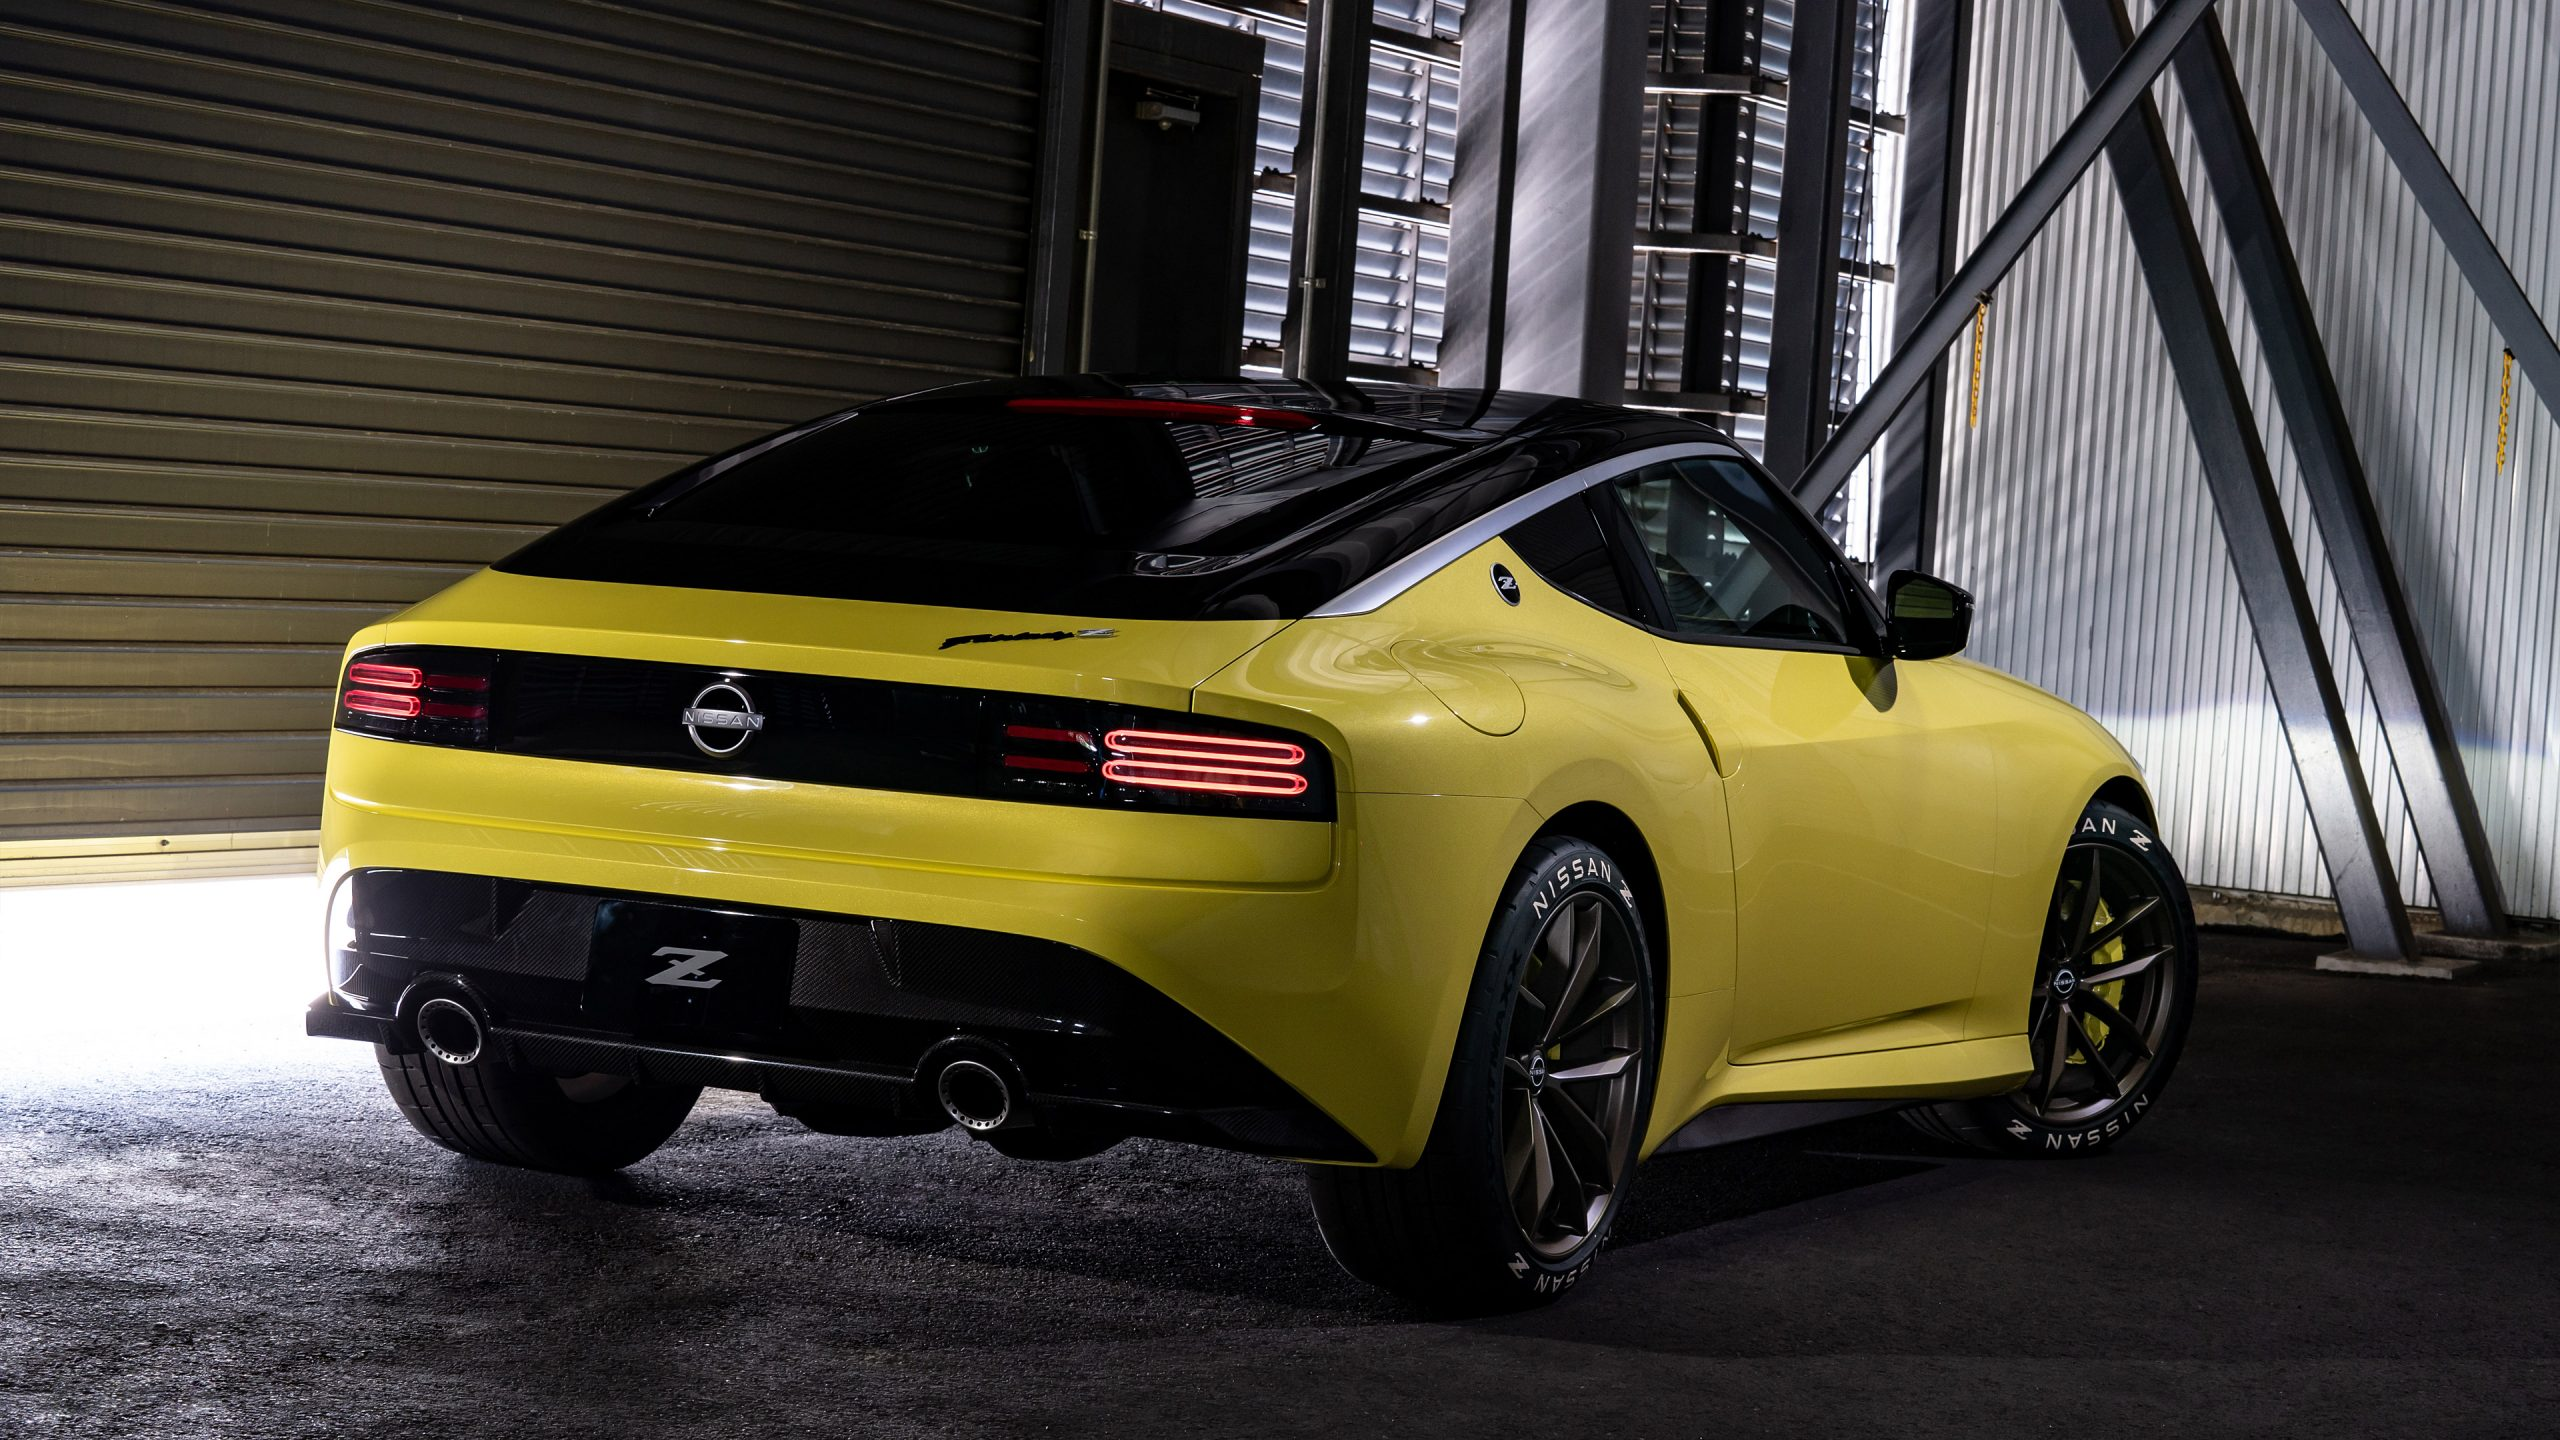 2020 Nissan Z Proto Wallpapers | SuperCars.net